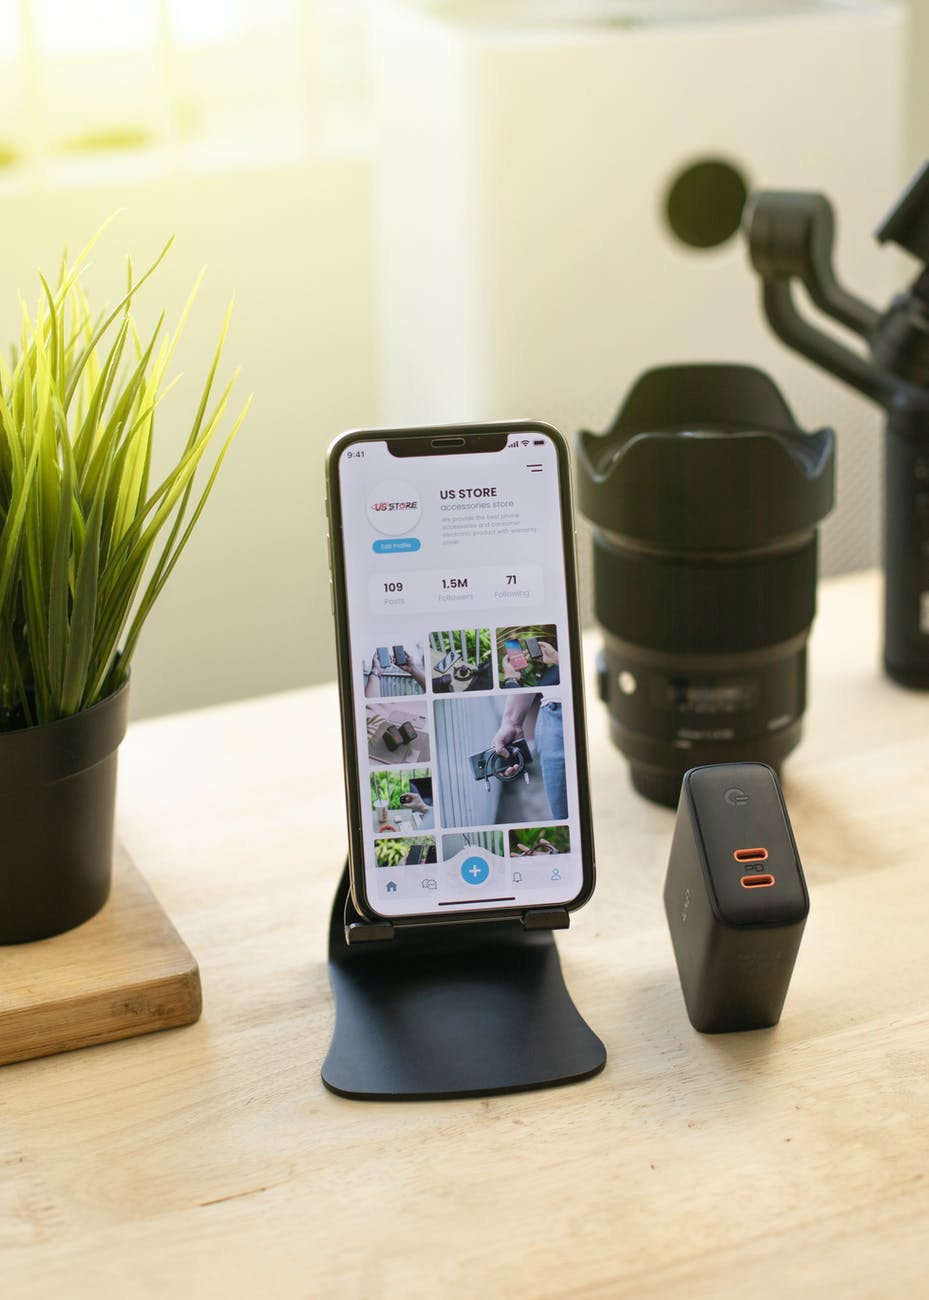 modern cellphone on holder placed on desk near gadgets